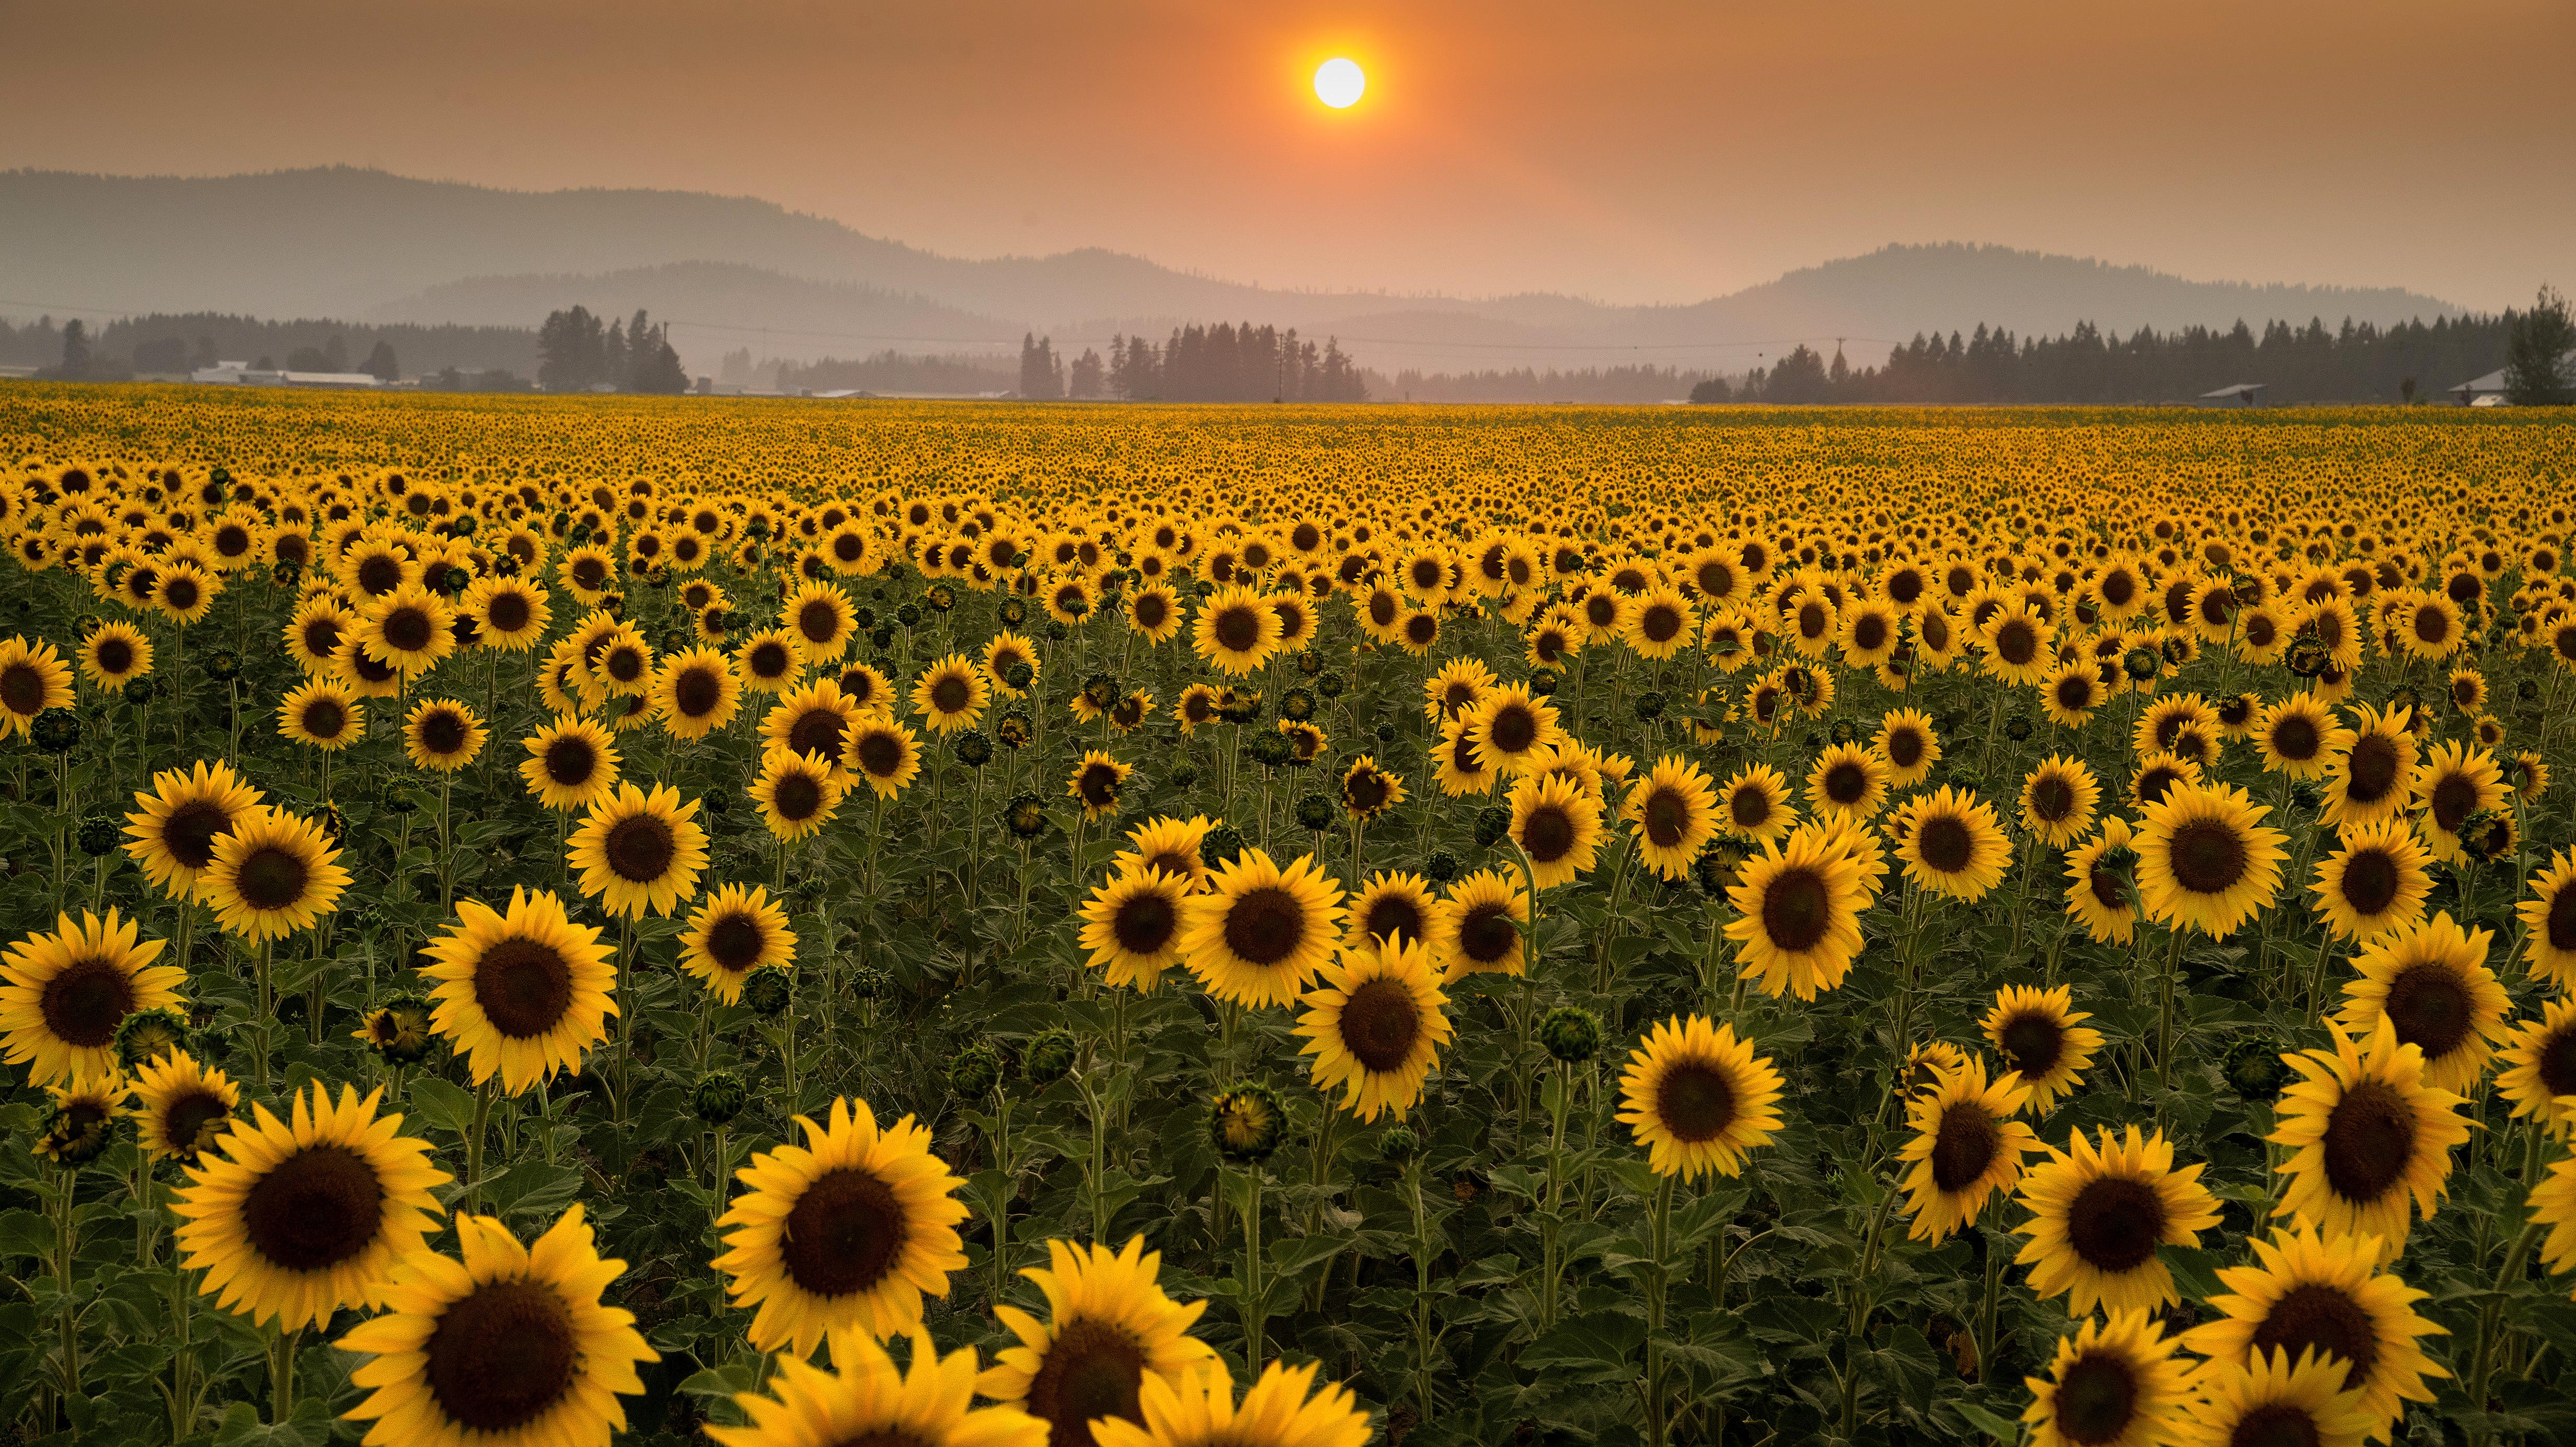 Fall Wallpapers For Desktop Idaho Sunflowers The Spokesman Review